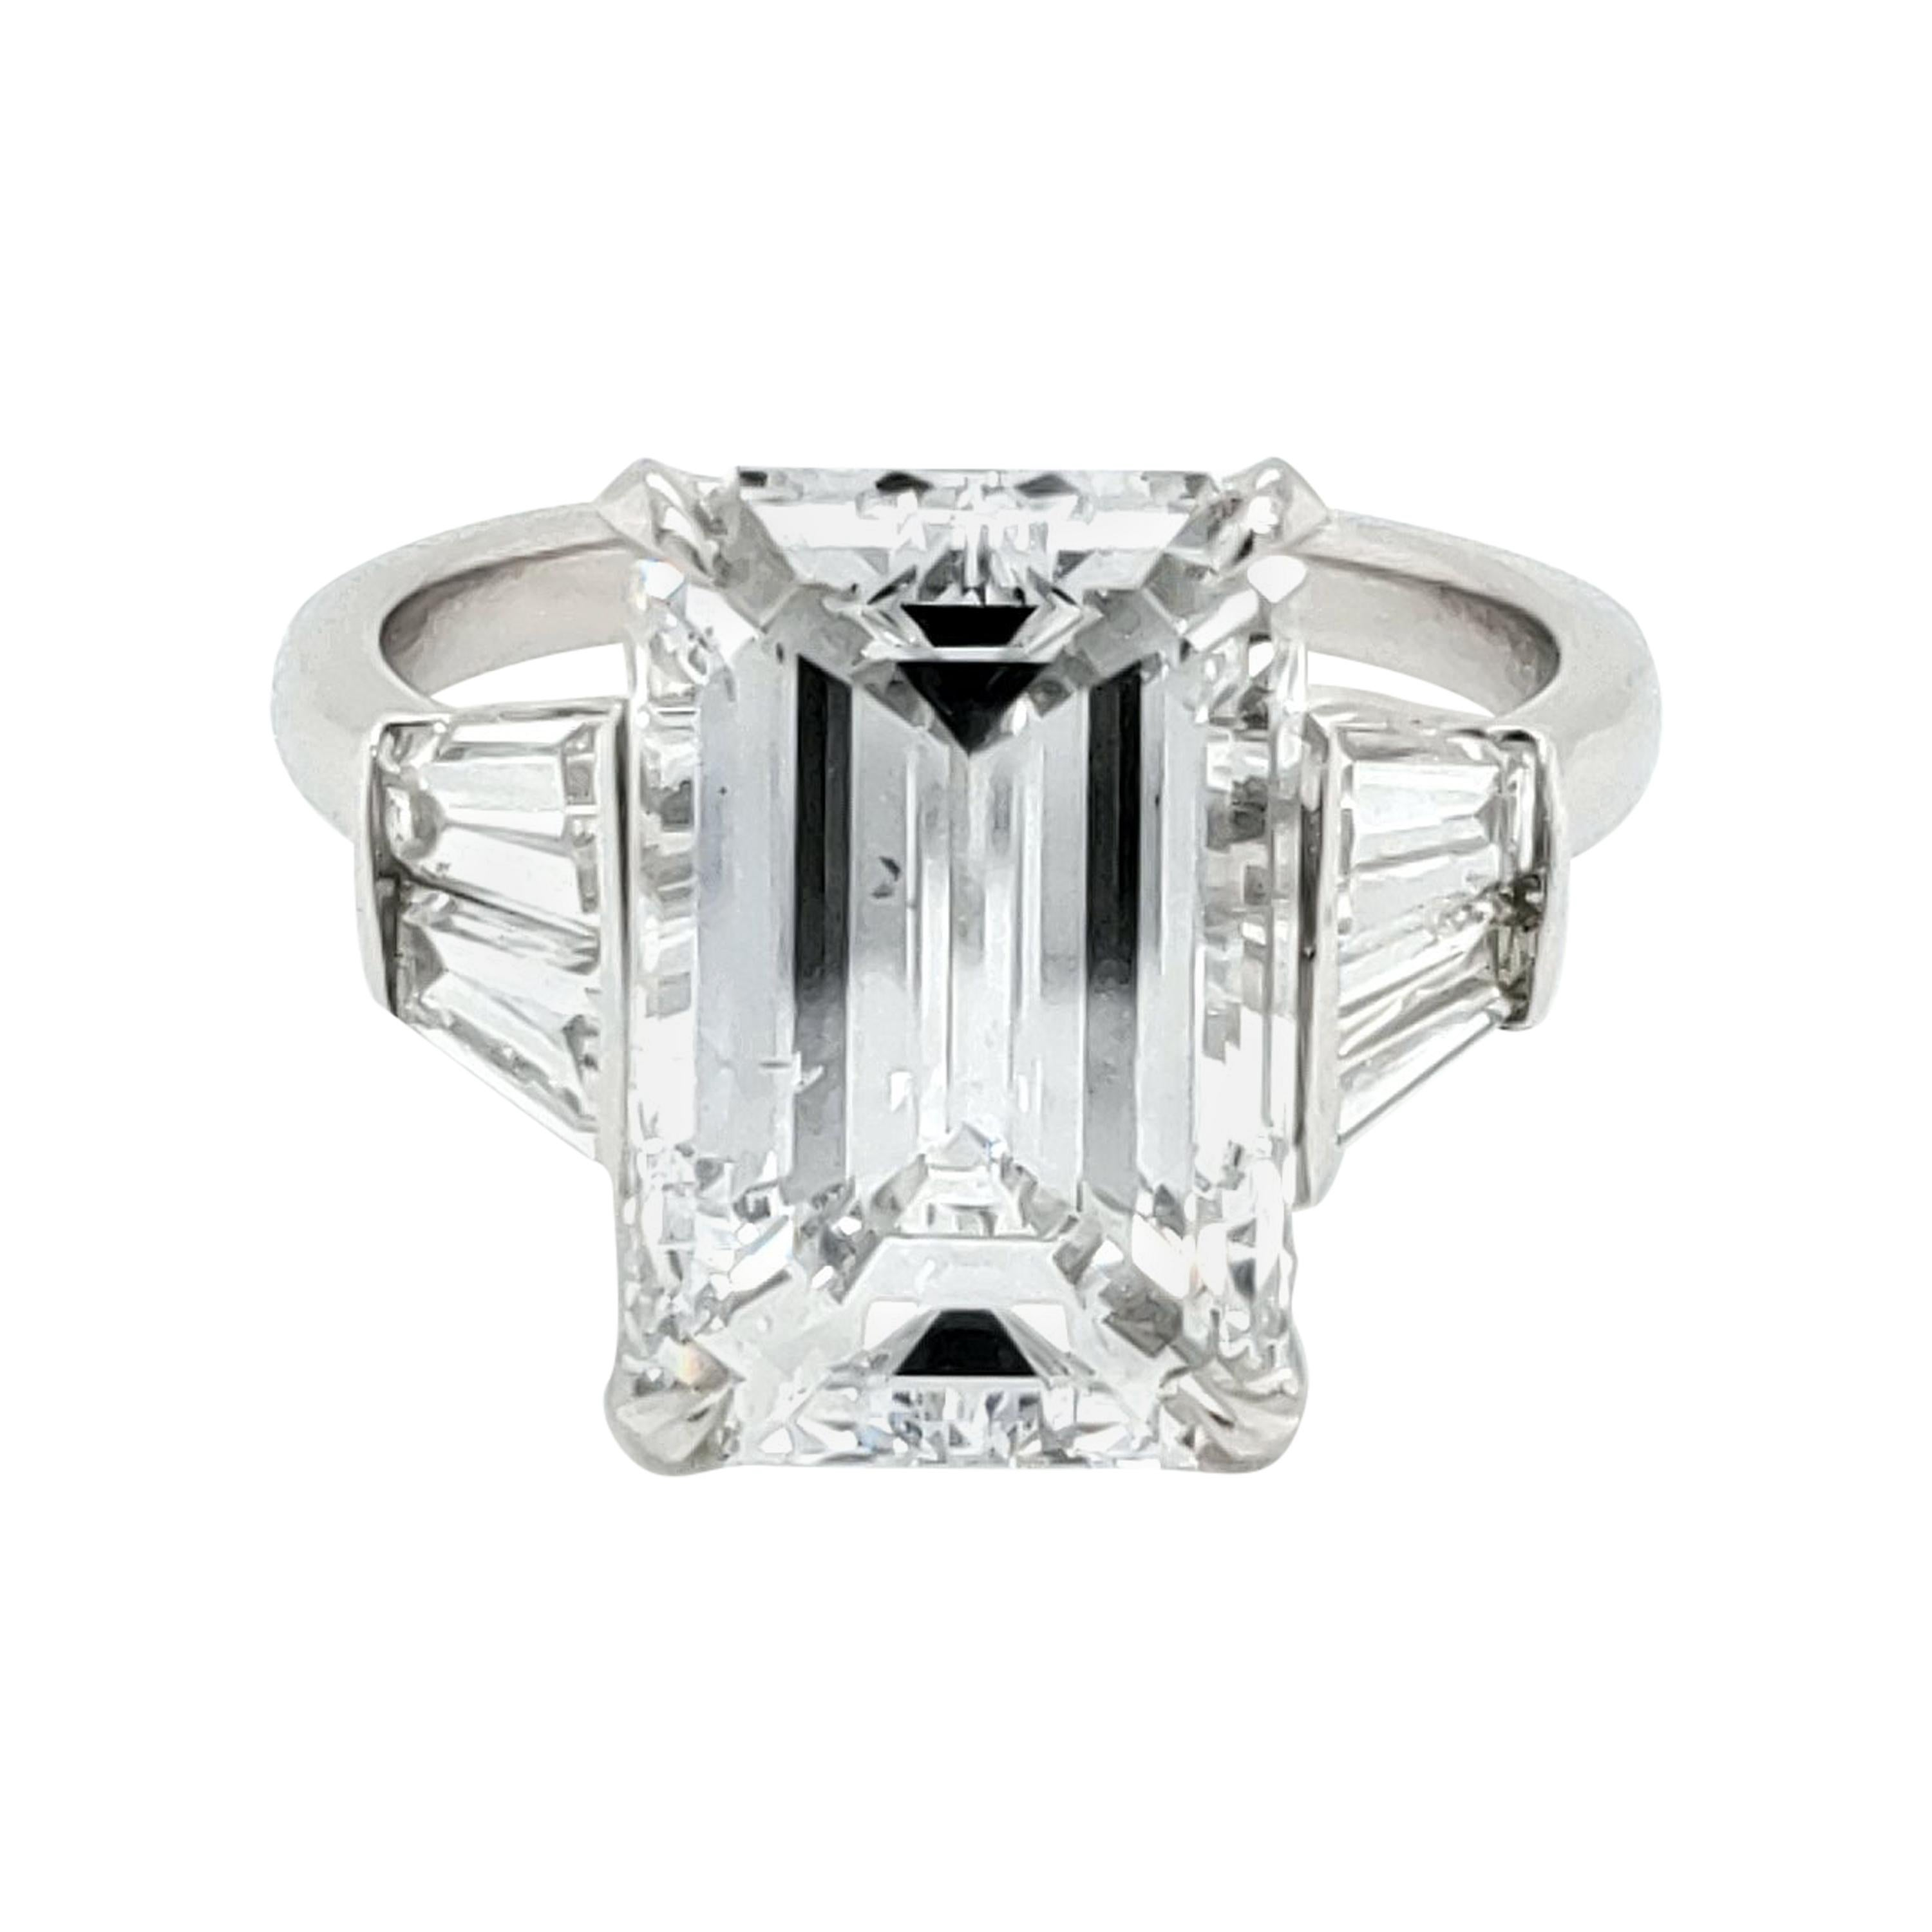 Gia Certified 6 Carat Emerald Cut Diamond And Tapered Baguette Diamond Plat Ring For Sale At 1stdibs